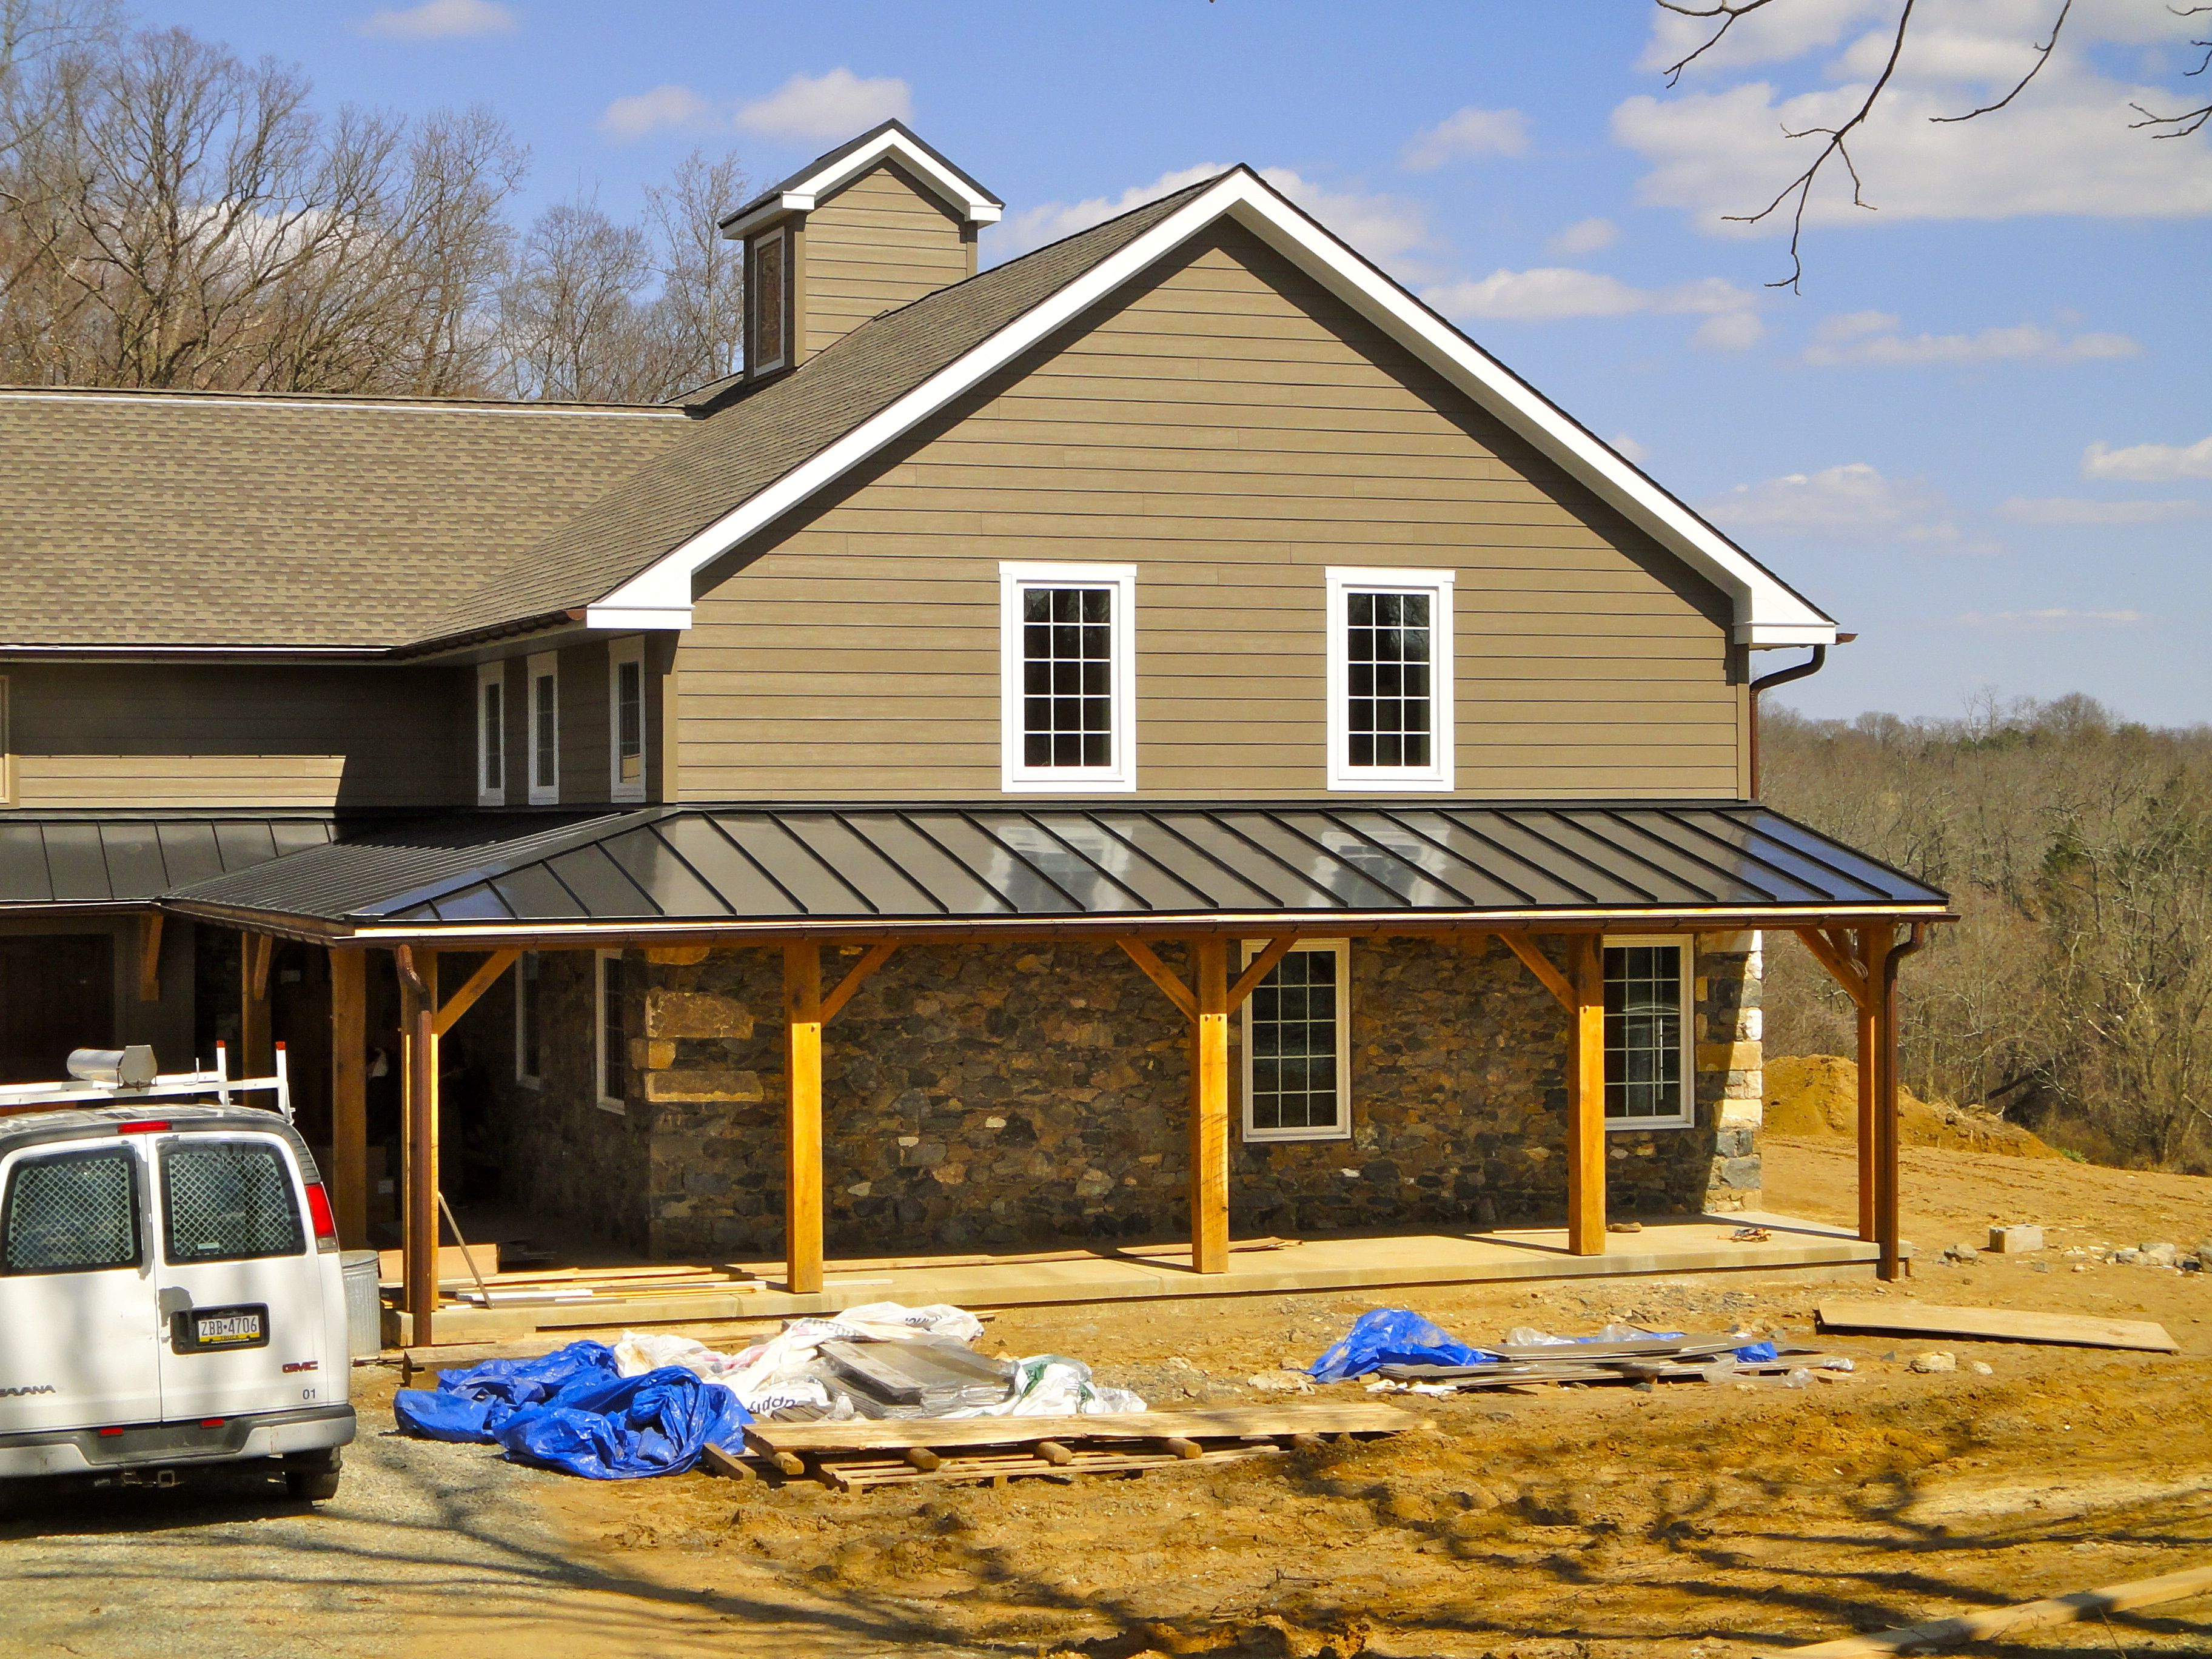 Farmhouse Exterior Colors With Metal Roof Metal Roof Is Shiny Houses With Hardie Board Siding And